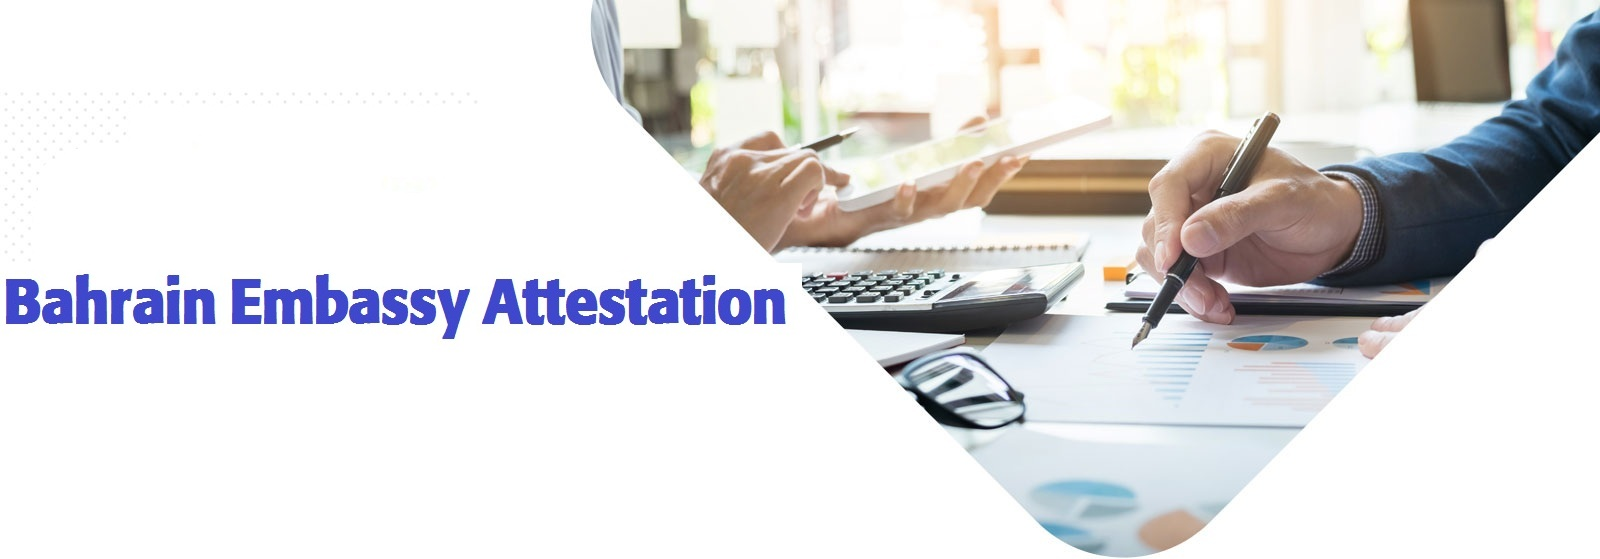 All That You Need To Know About Embassy Attestation for Bahrain